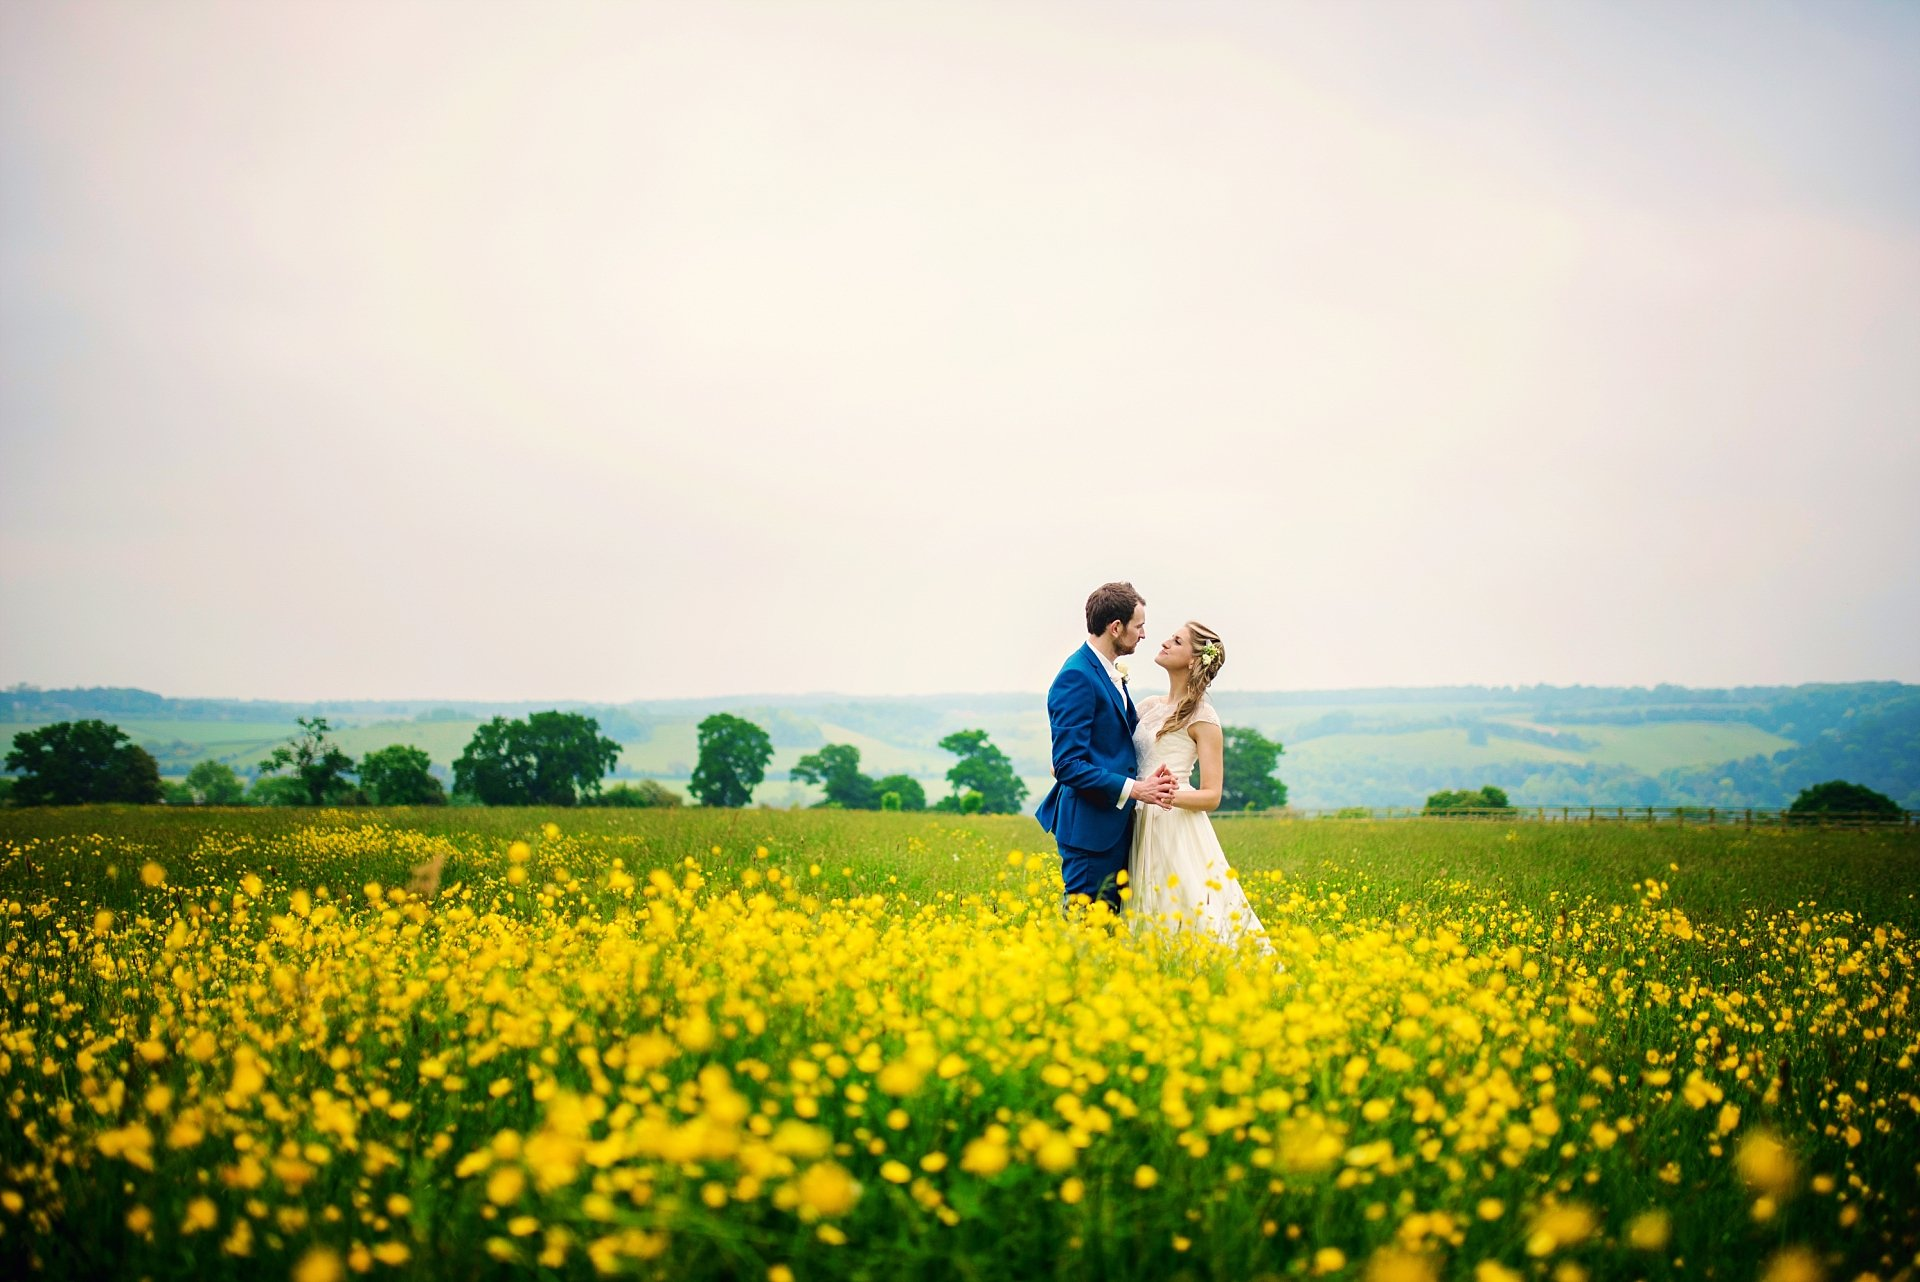 hillfields farm wedding photographer